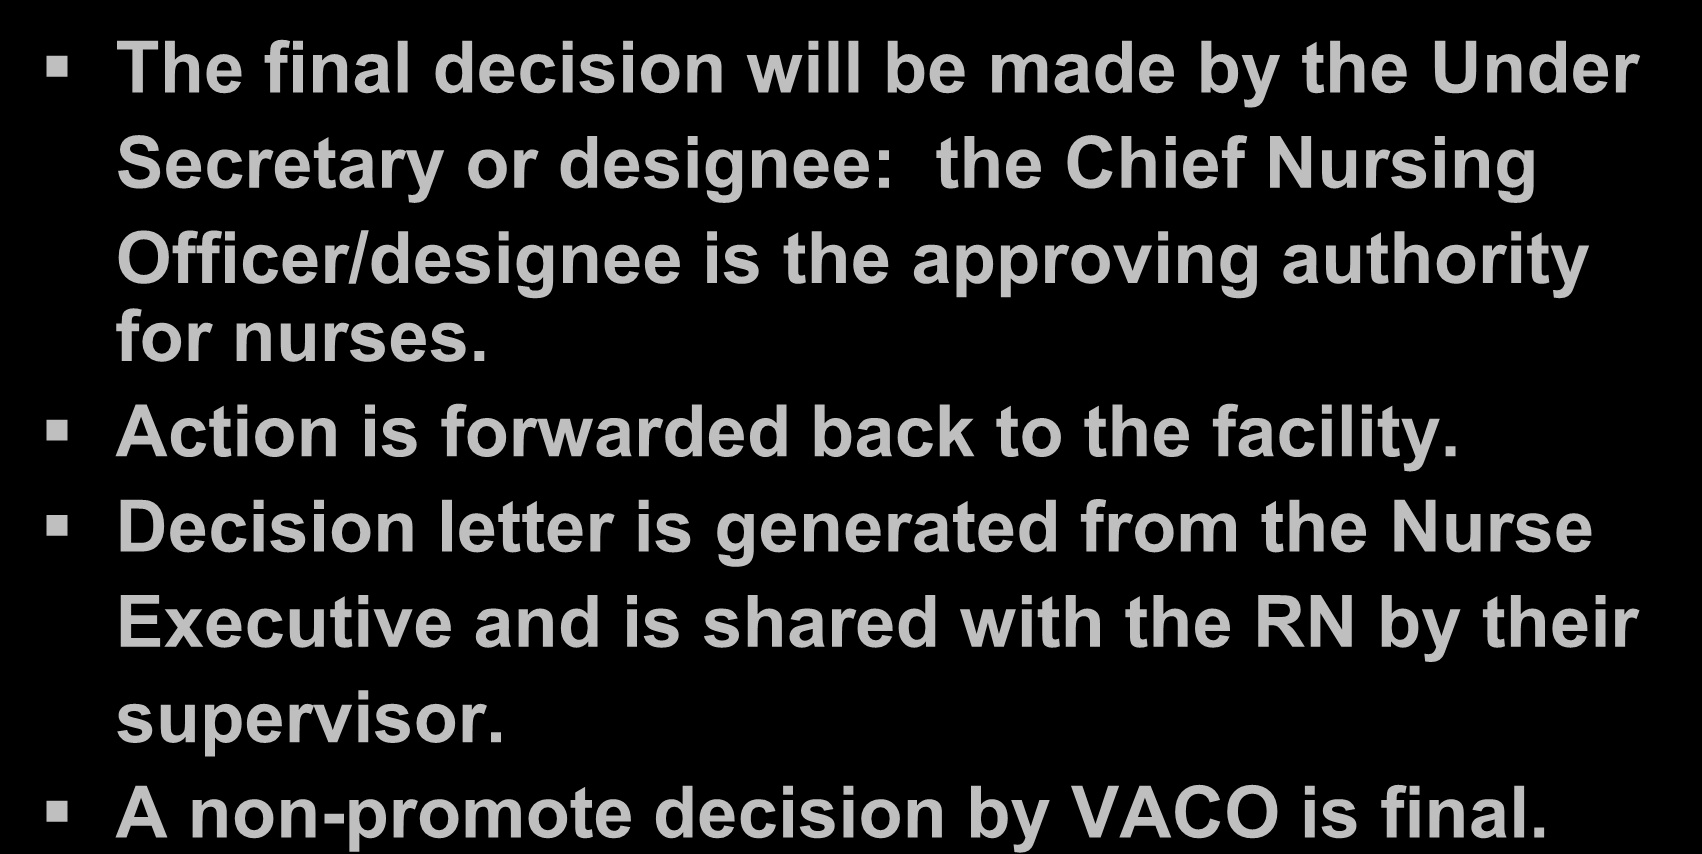 VACO Reconsideration The final decision will be made by the Under Secretary or designee: the Chief Nursing Officer/designee is the approving authority for nurses.